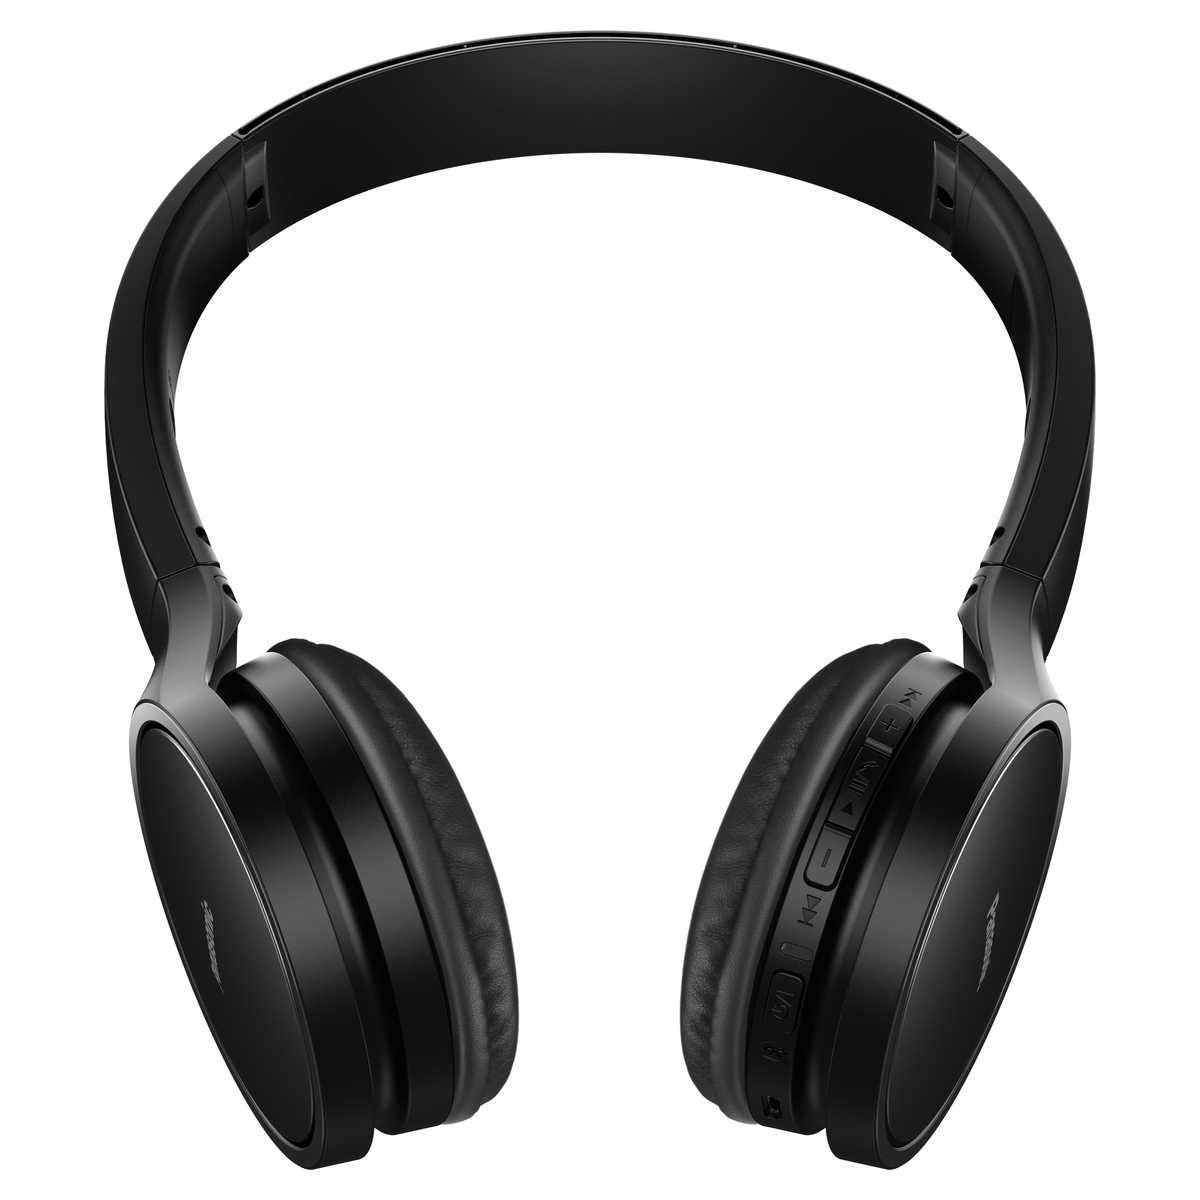 f1b09f6a7a5bd5 Panasonic RP-HF400BE-K Wireless Bluetooth On Ear Headphones Black |  Appliances Online